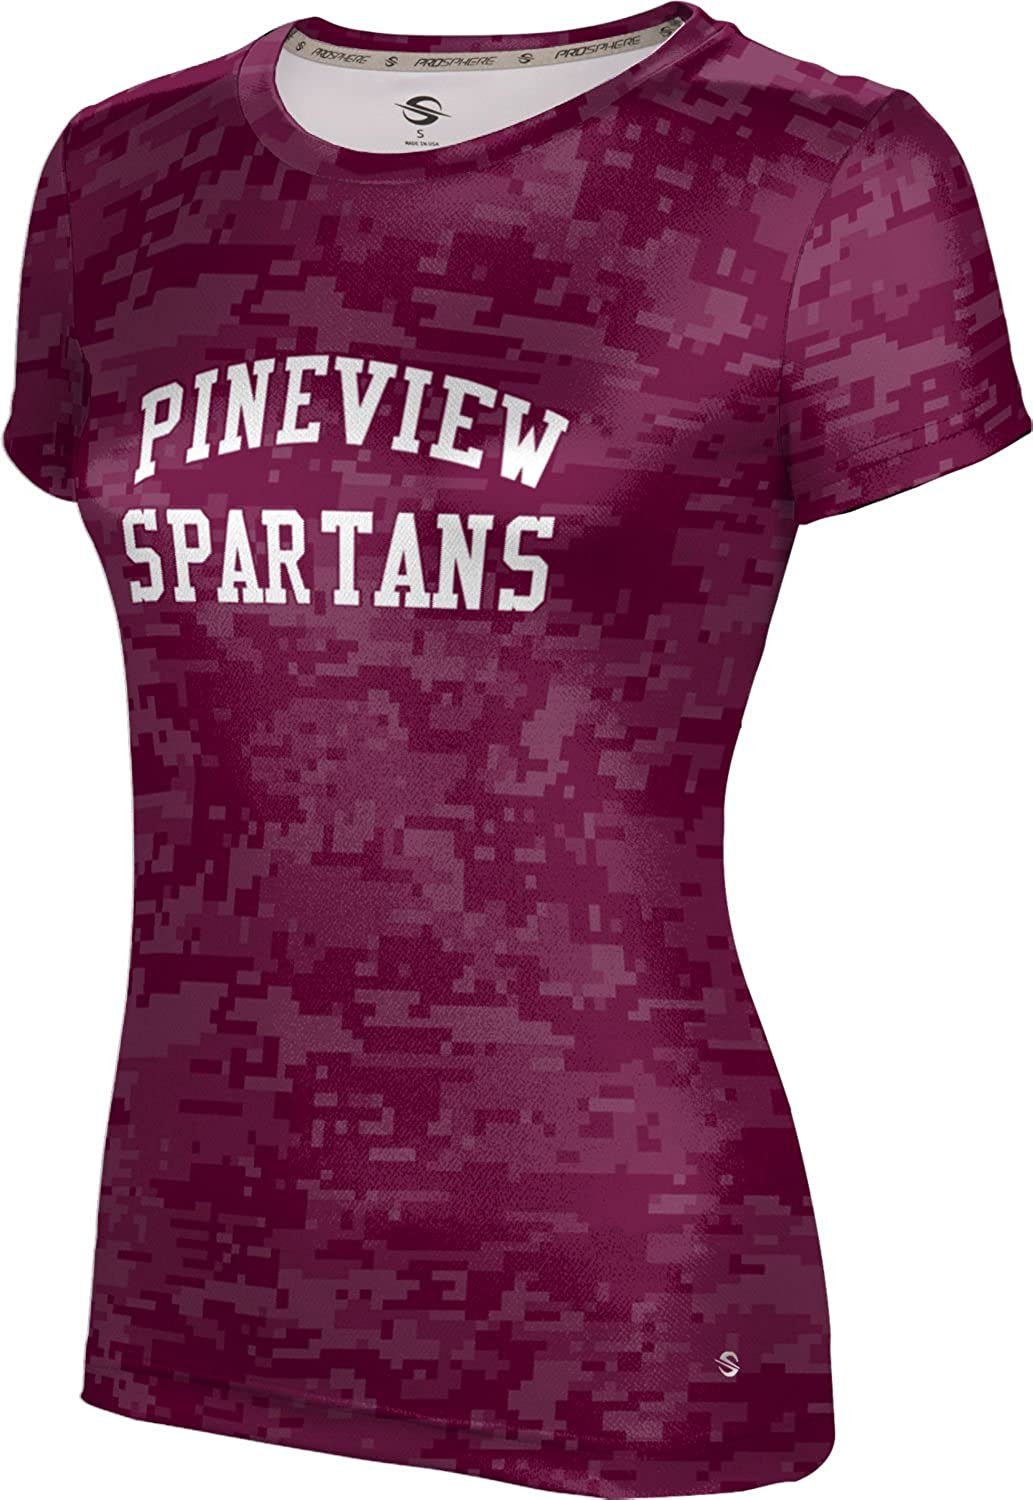 ProSphere Women's Pineview High School Digital Tech Tee